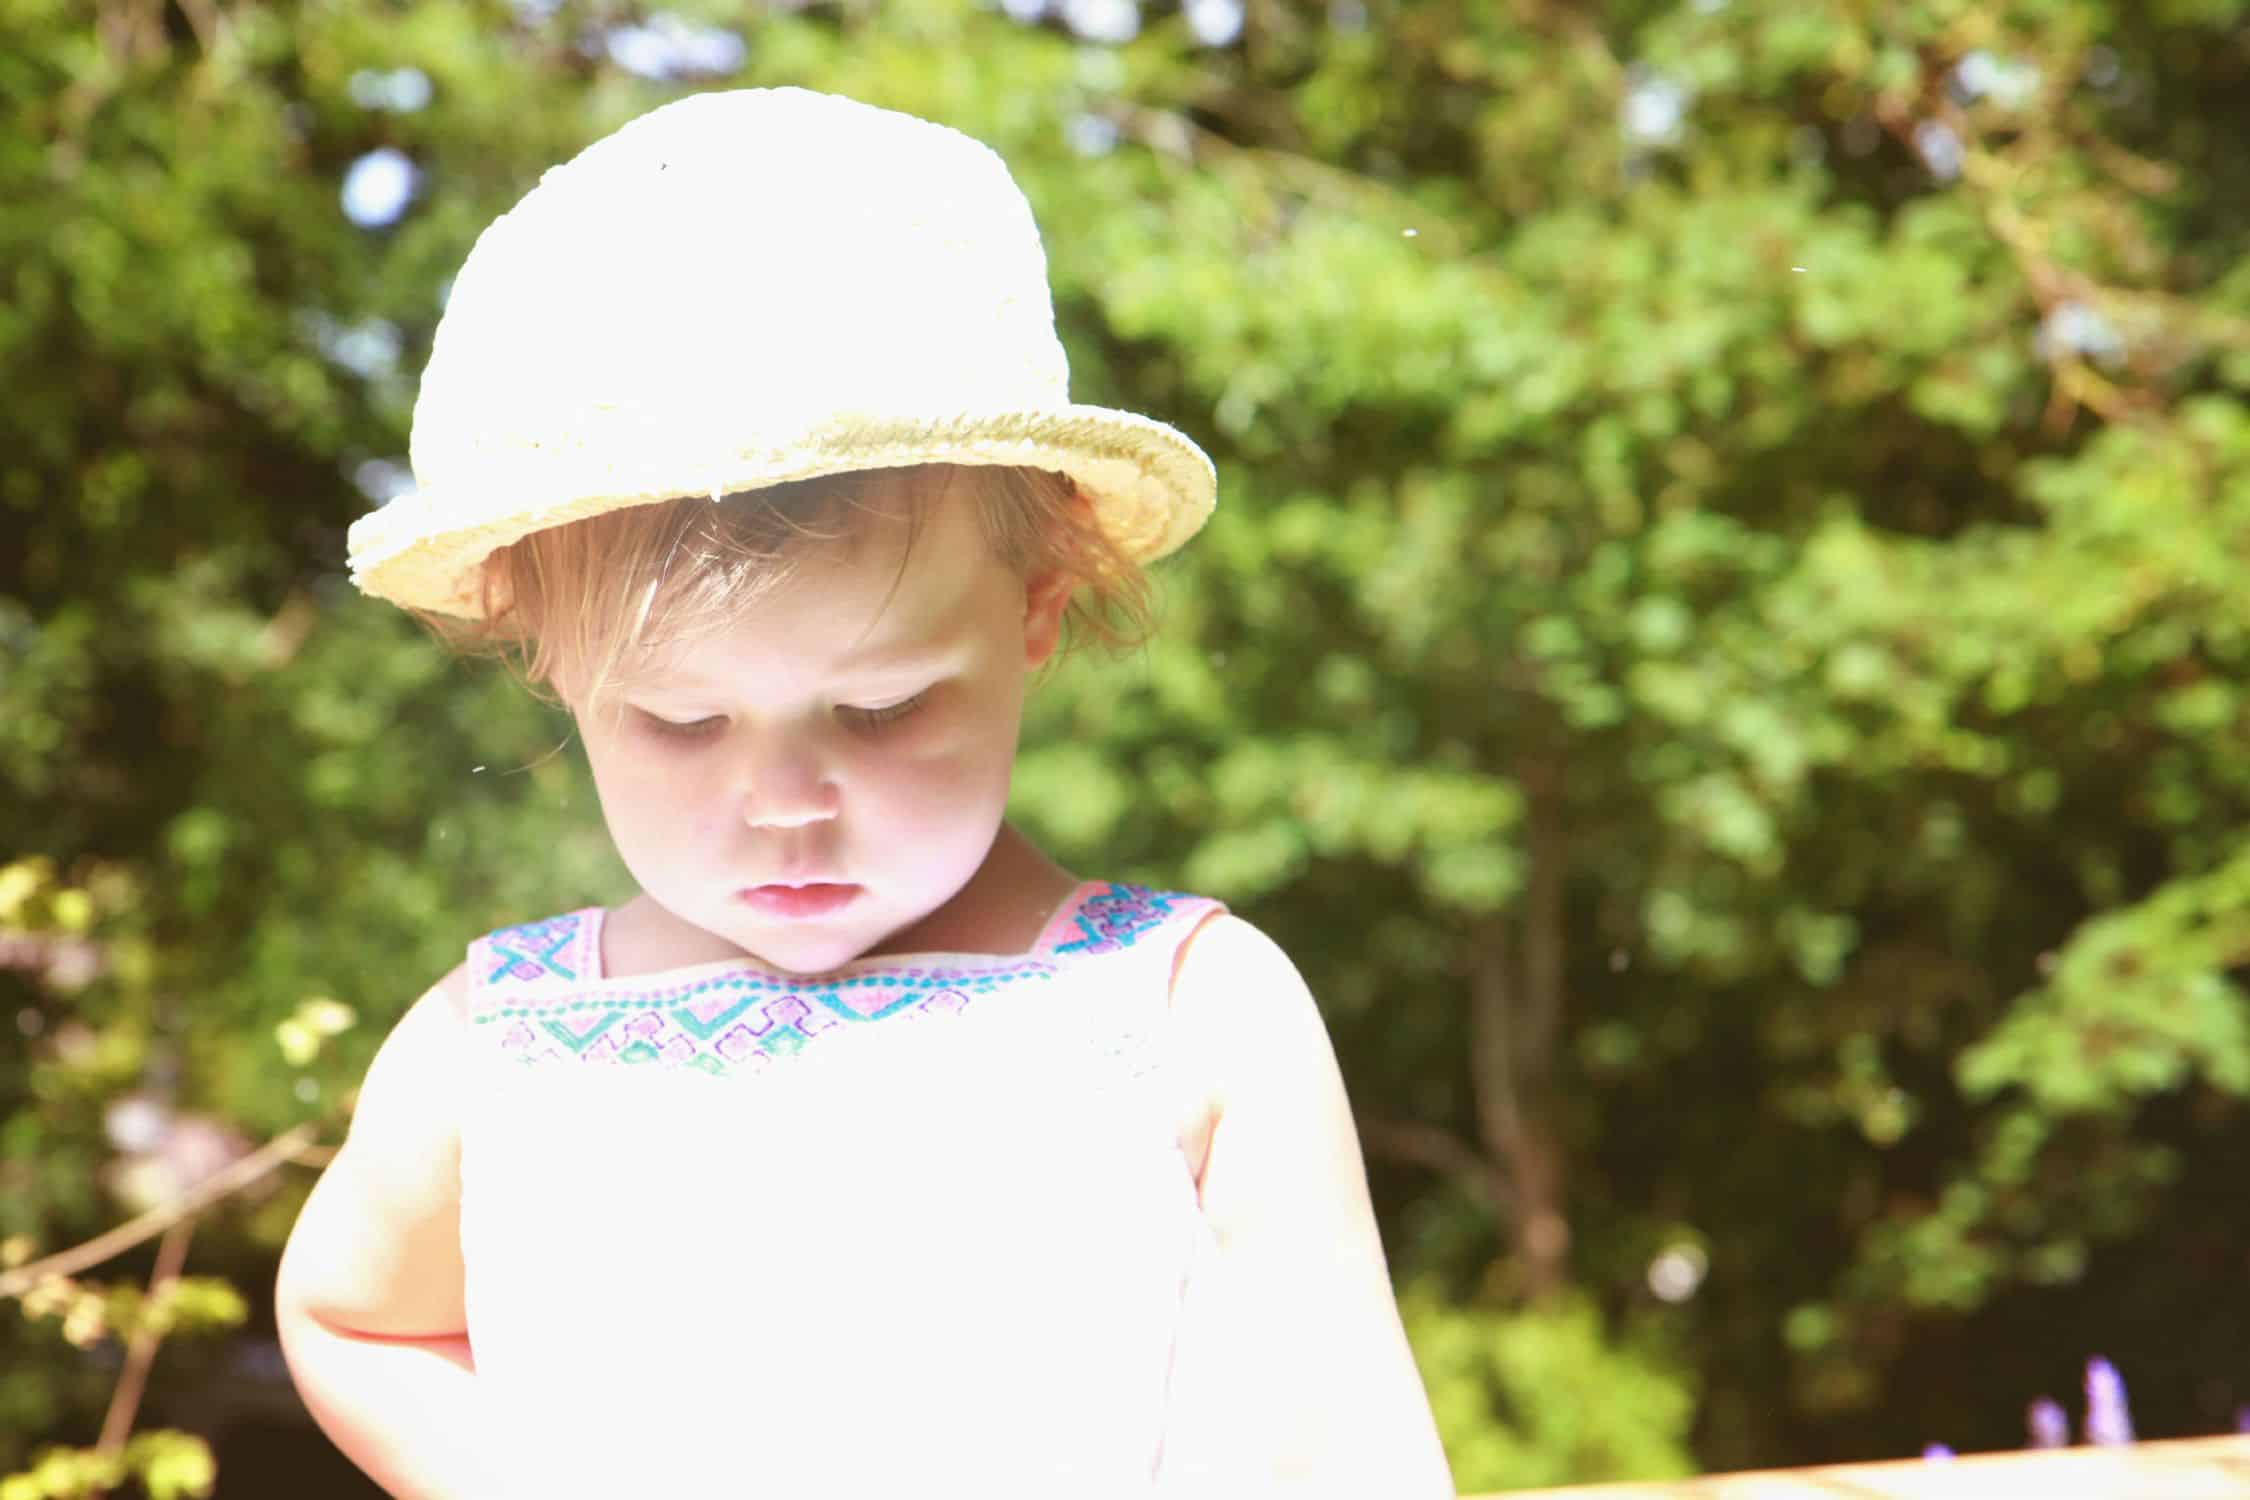 Little girl in a hat in the sunlight